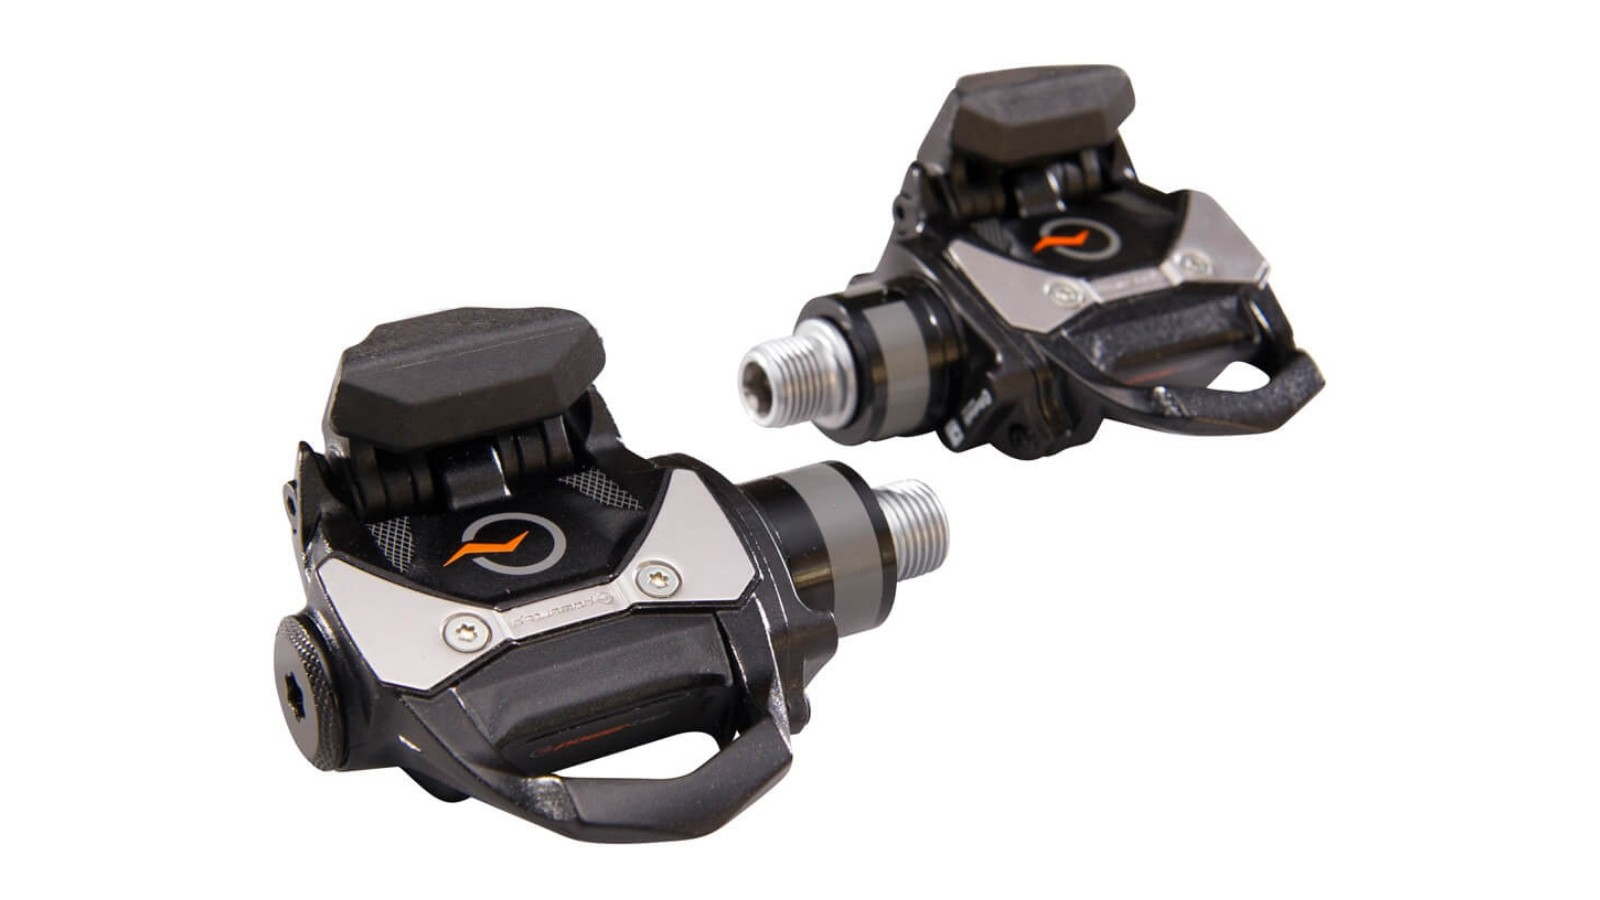 The Powertap P1 dual-sided power meter installs like any other pedal